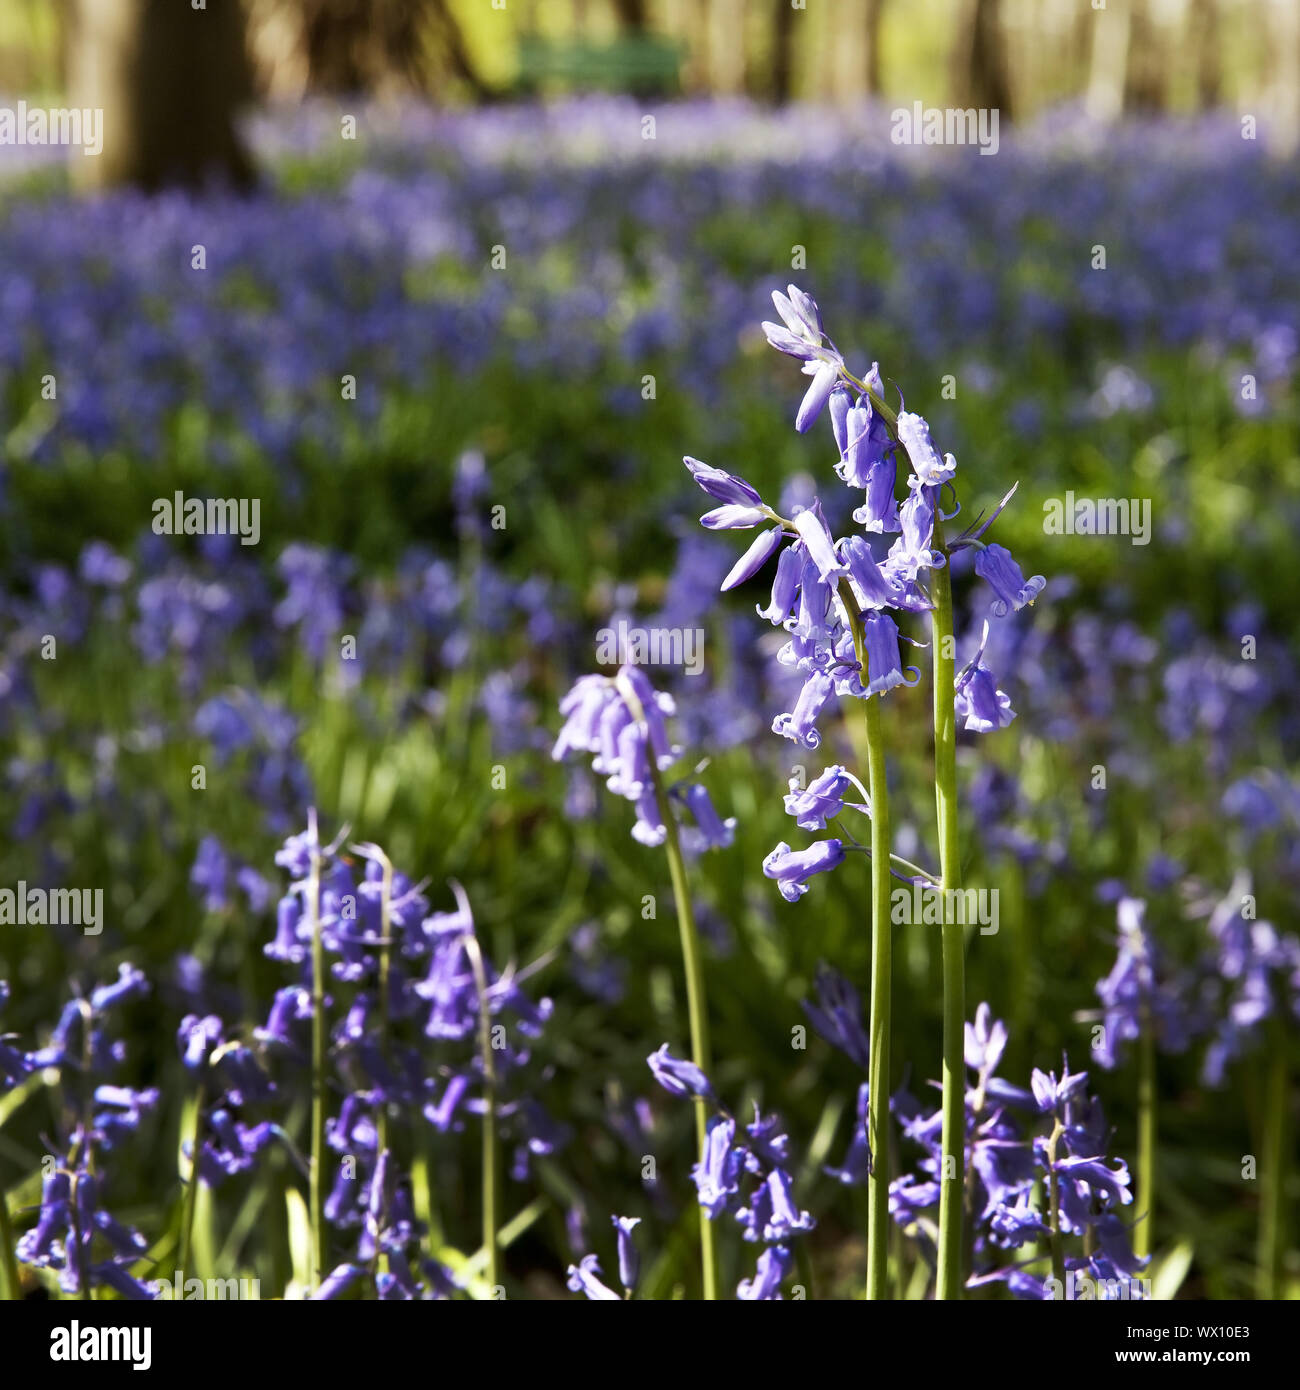 Atlantic bluebell (Hyacinthoides non-scripta), forest of blue flowers, Hueckelhoven, Germany, Europe Stock Photo